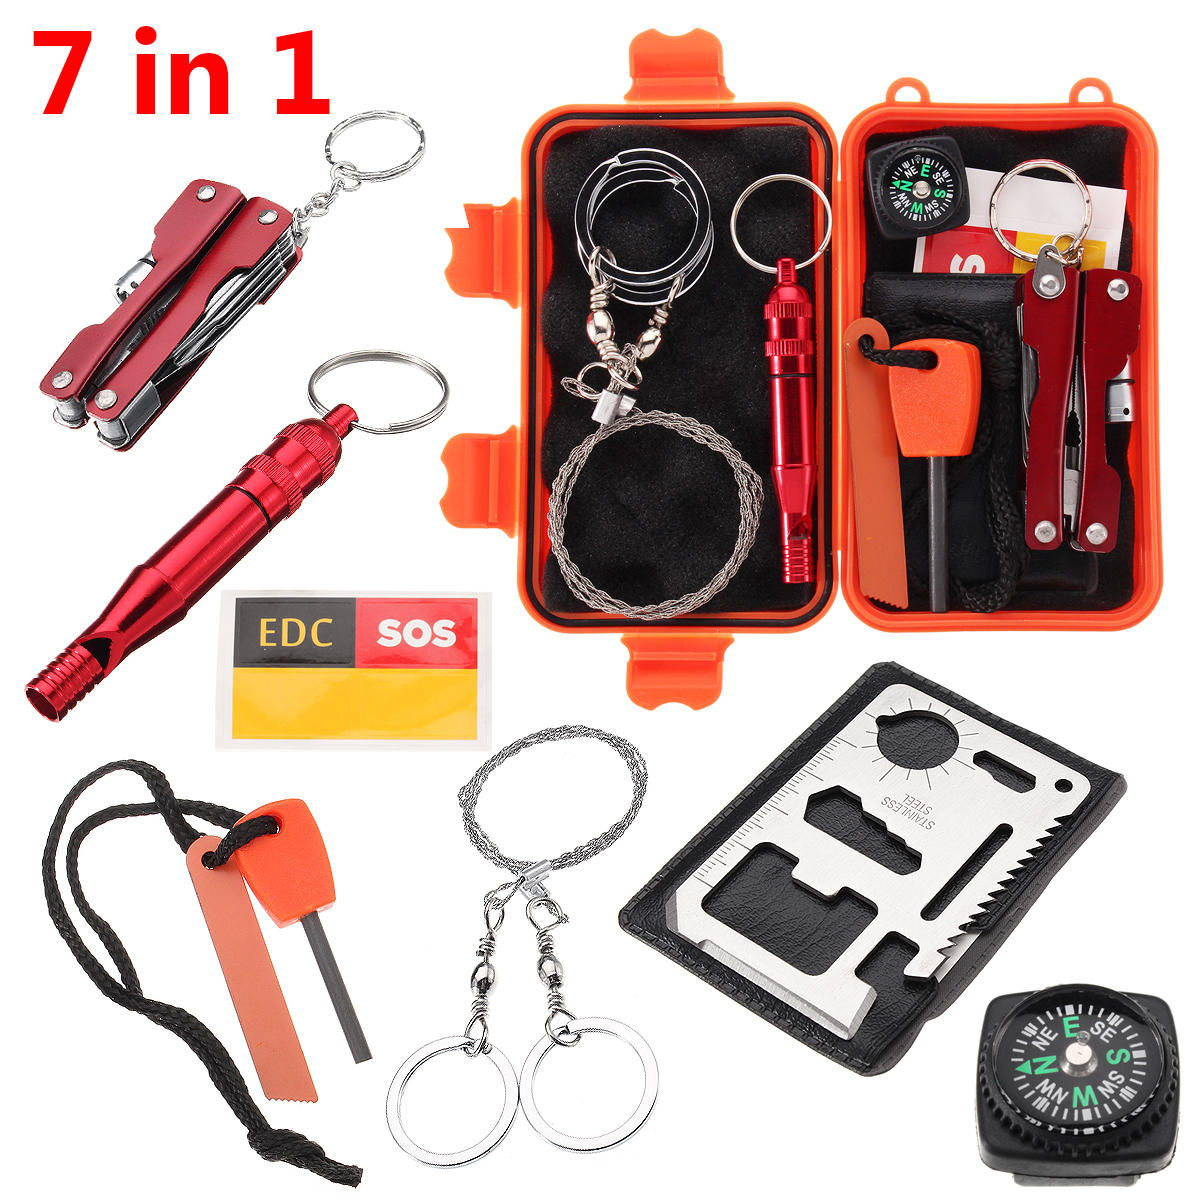 Outdoor Emergency Equipment Box Camping Survival Gear Whistle 11 in 1 SOS Kit